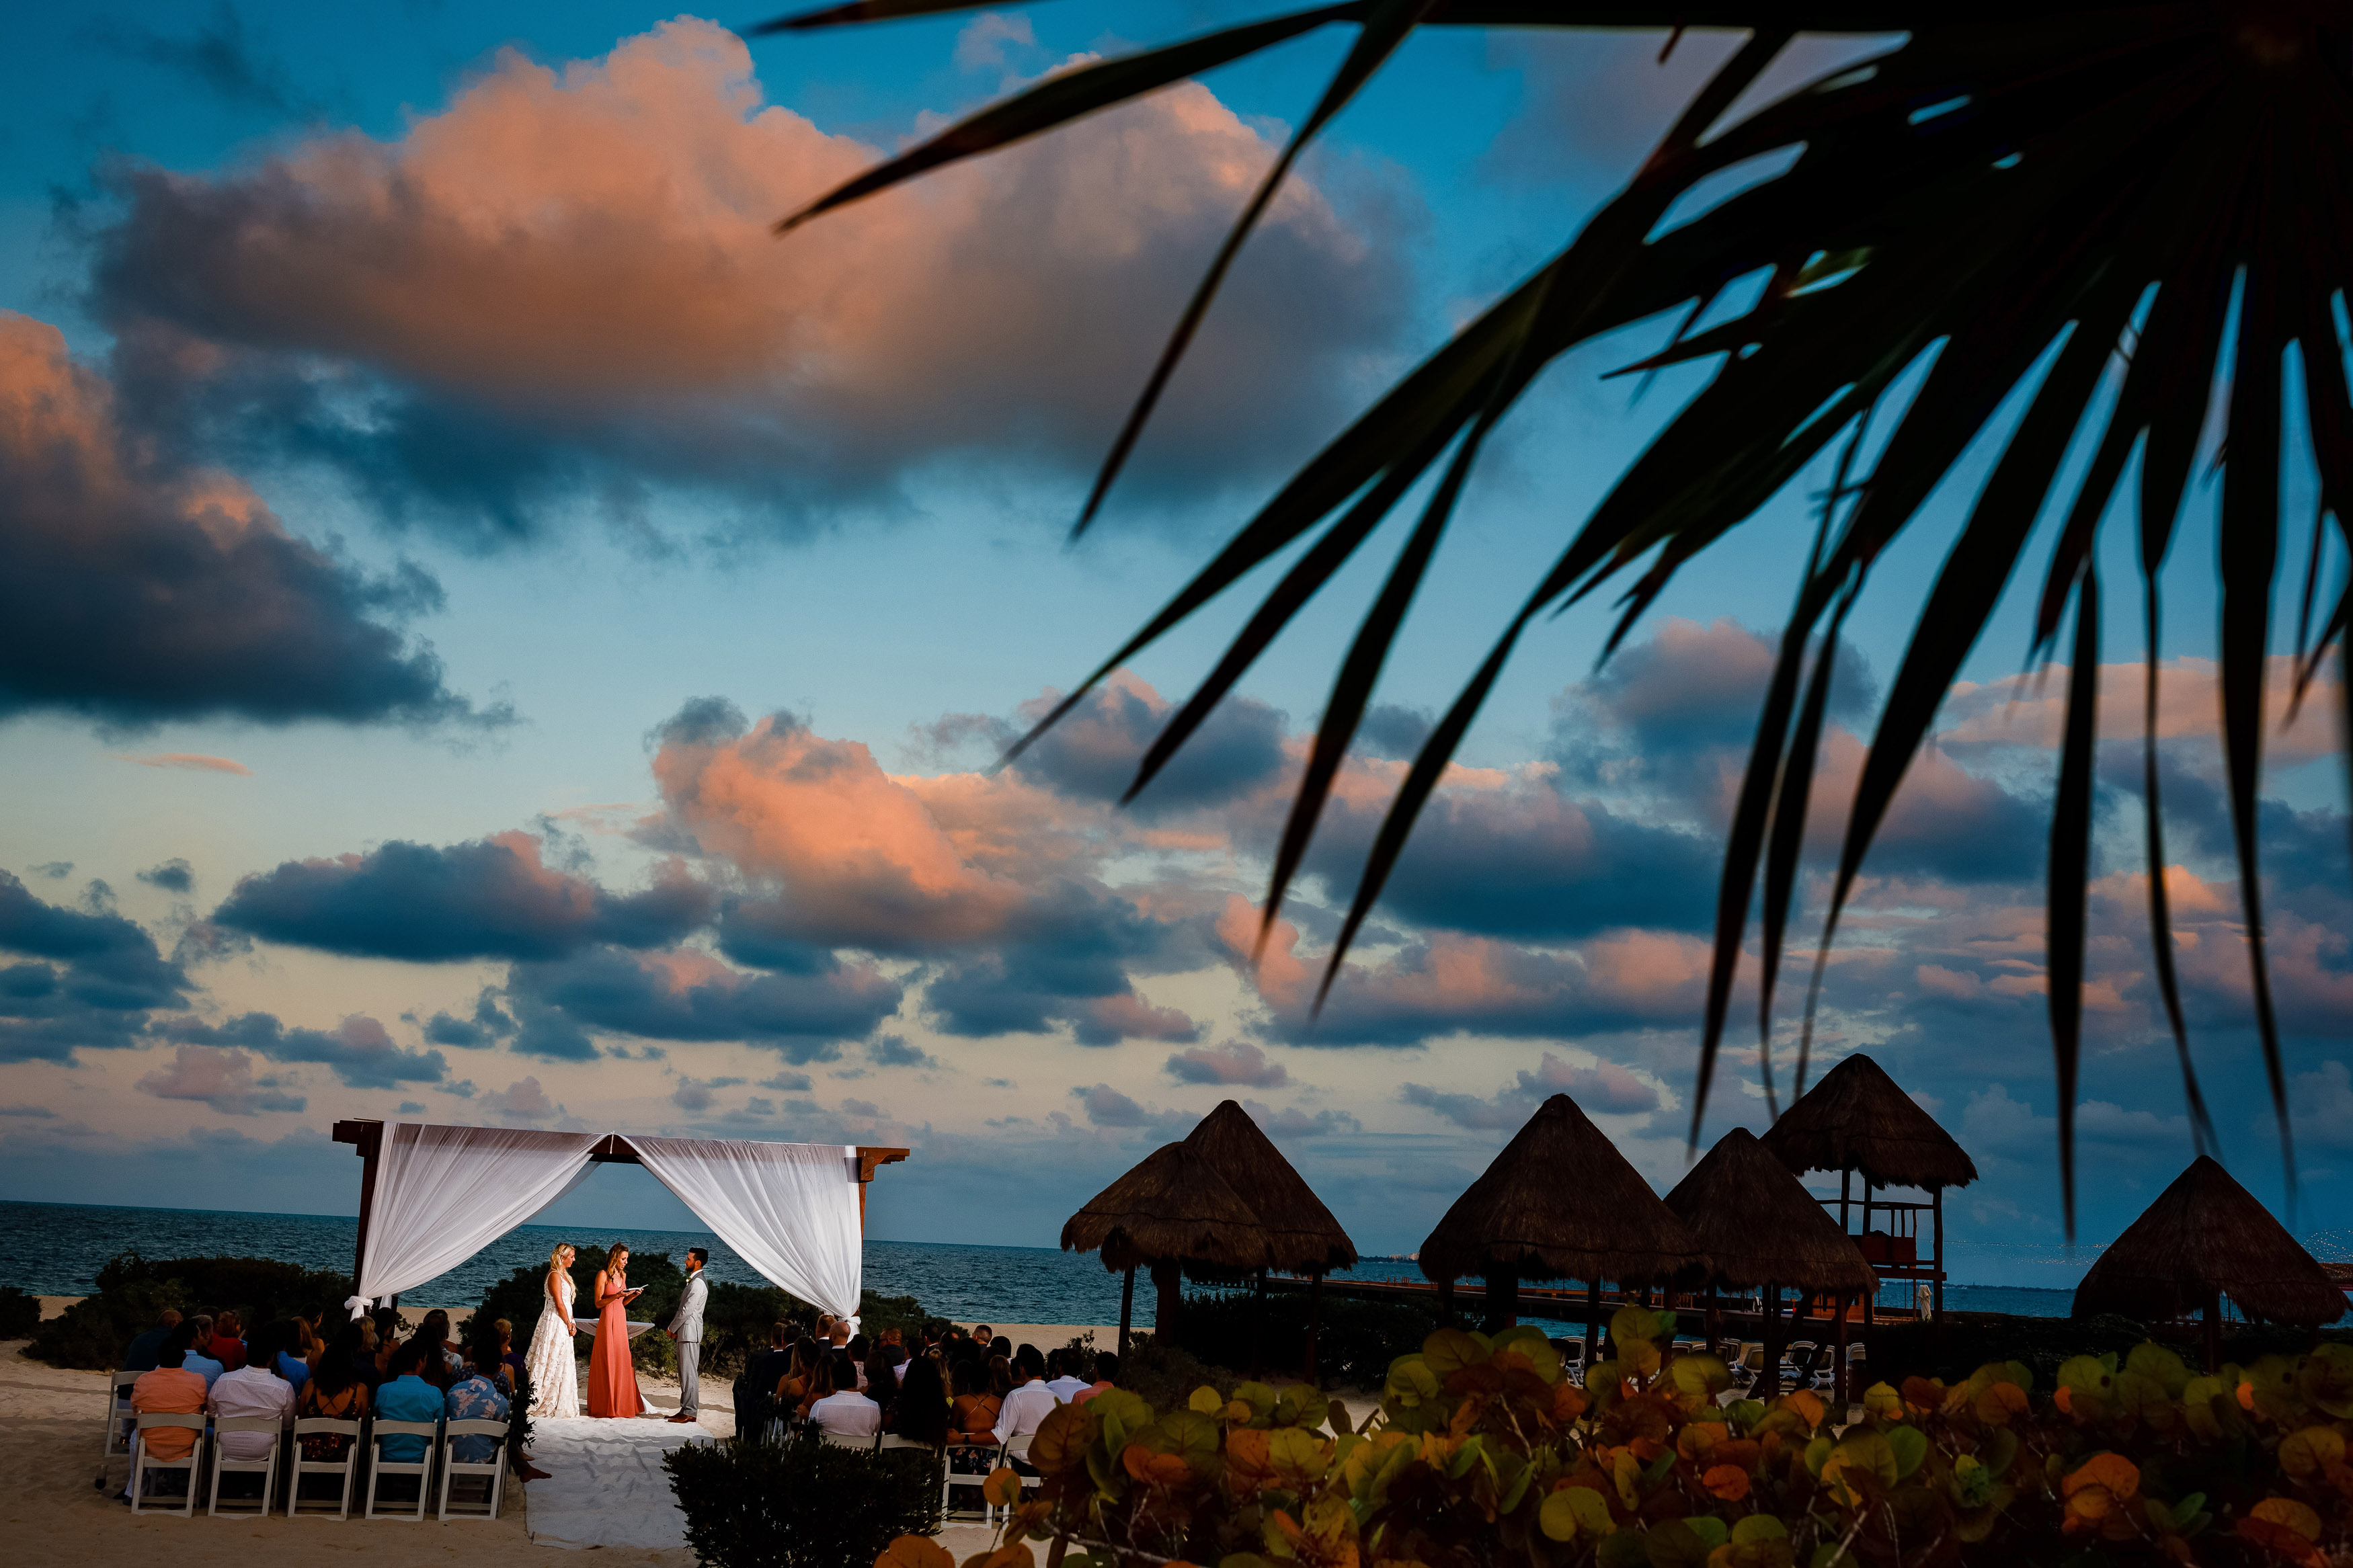 A sunset wedding ceremony at the Dreams Playa Mujeres Resort in Quintana Roo.